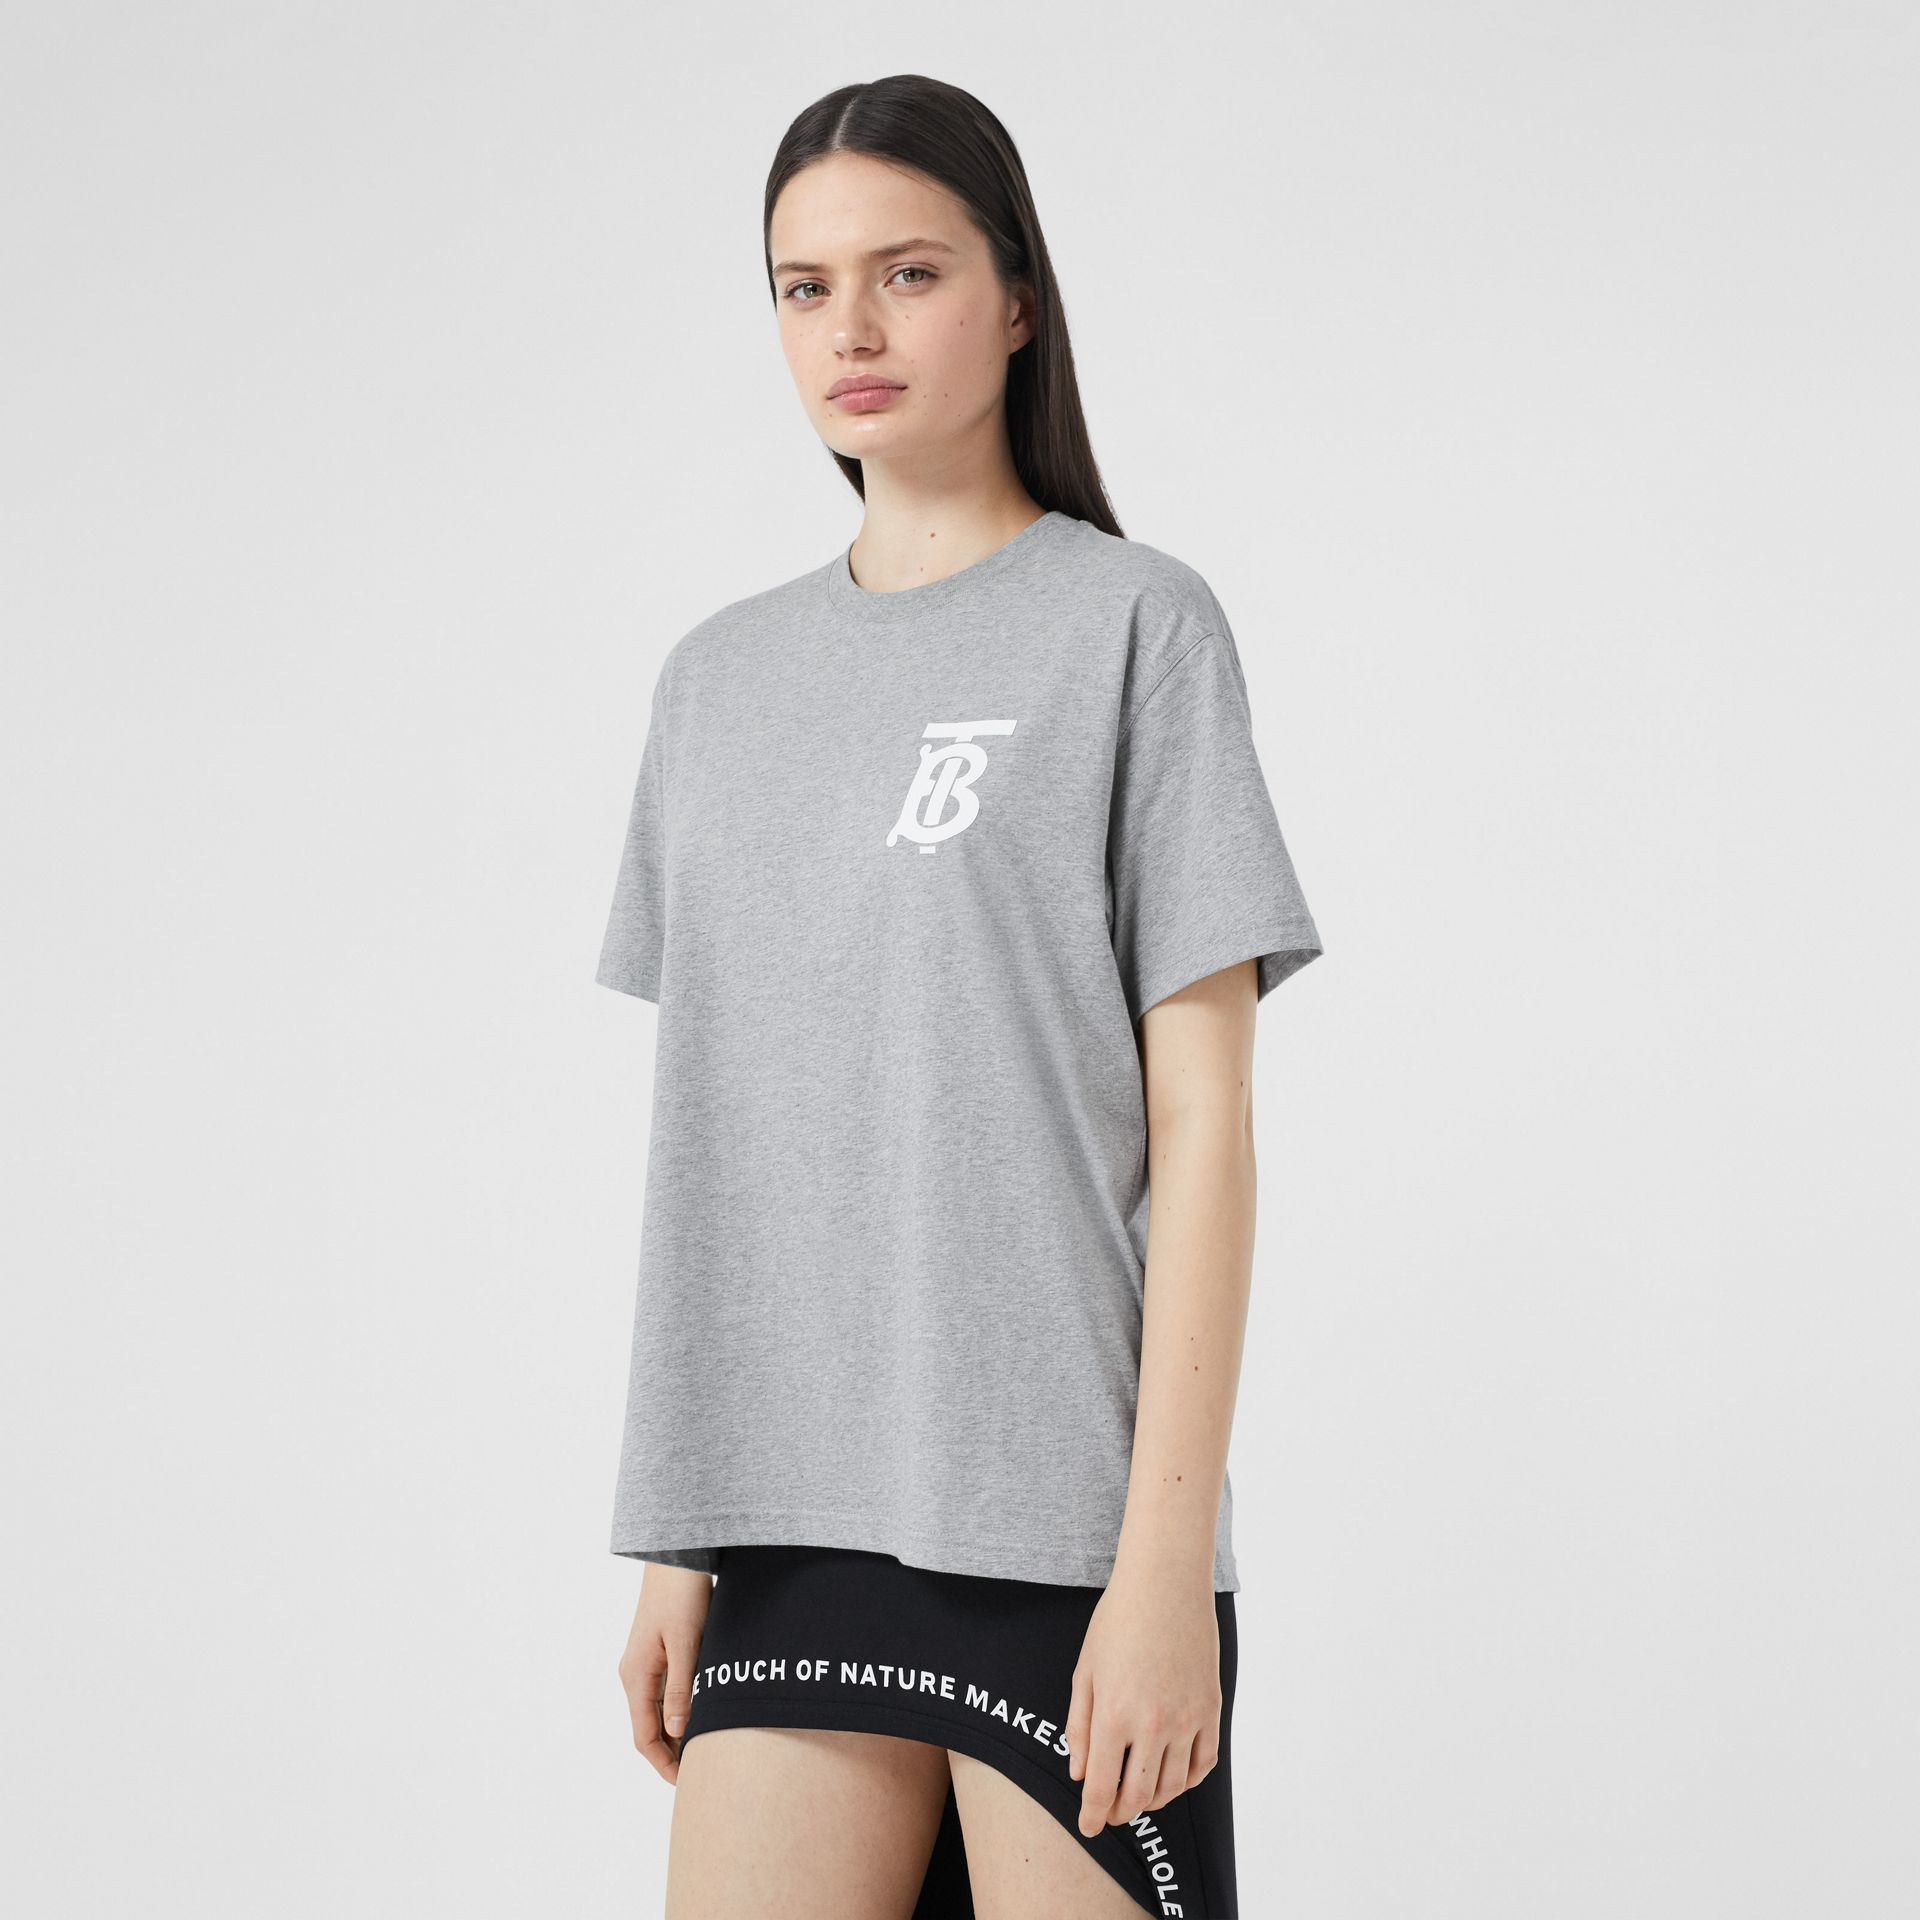 Monogram Motif Cotton Oversized T-shirt in Pale Grey Melange - Women | Burberry - gallery image 4